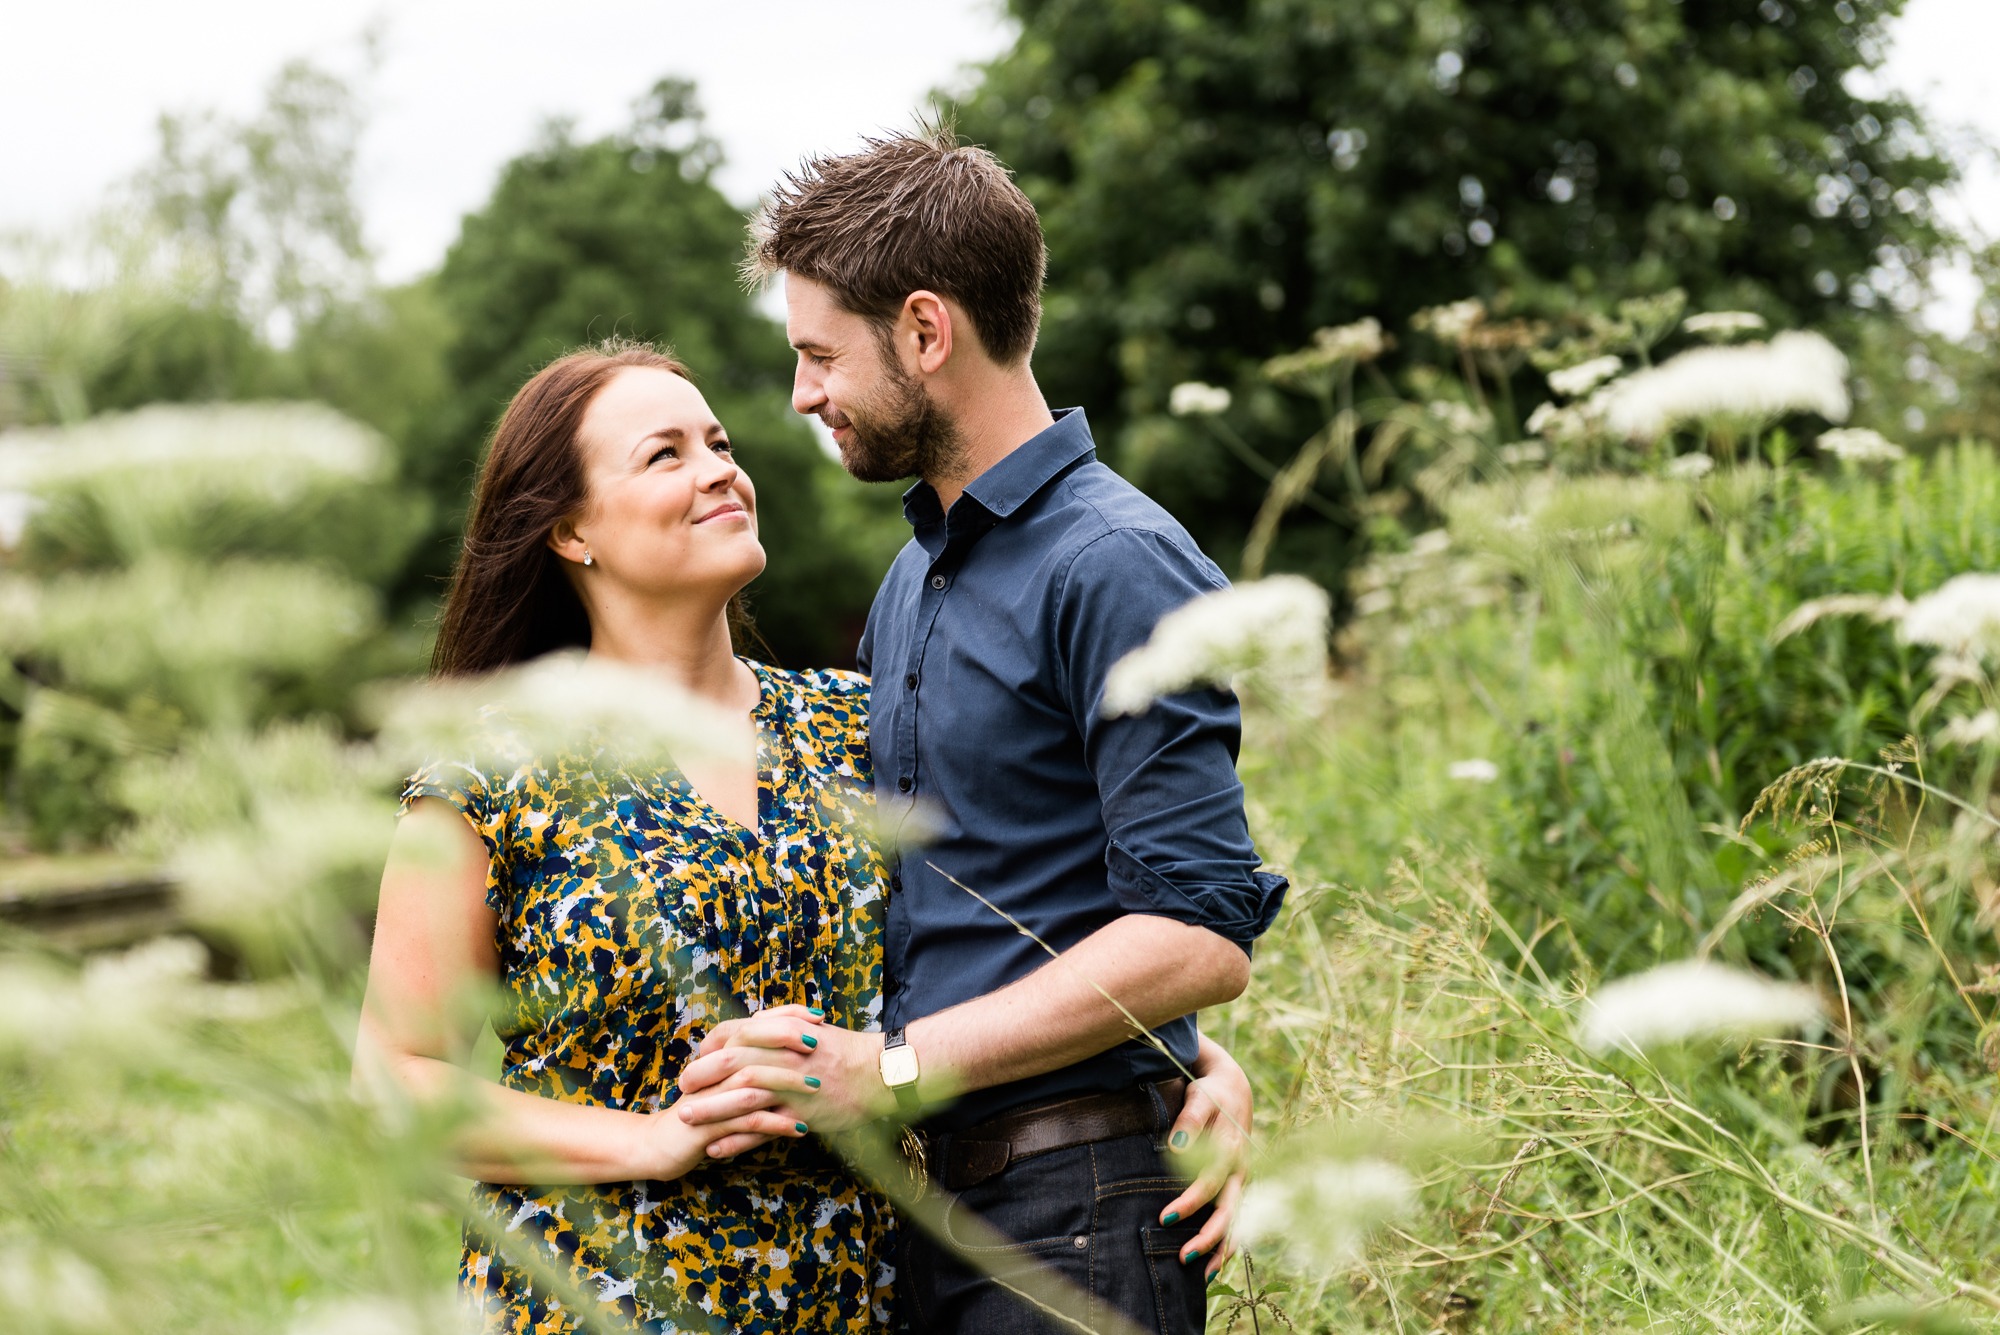 Pre-Wedding Session Engagement Photos Couple Shoot English countryside Canal - Jenny Harper Photography-12.jpg